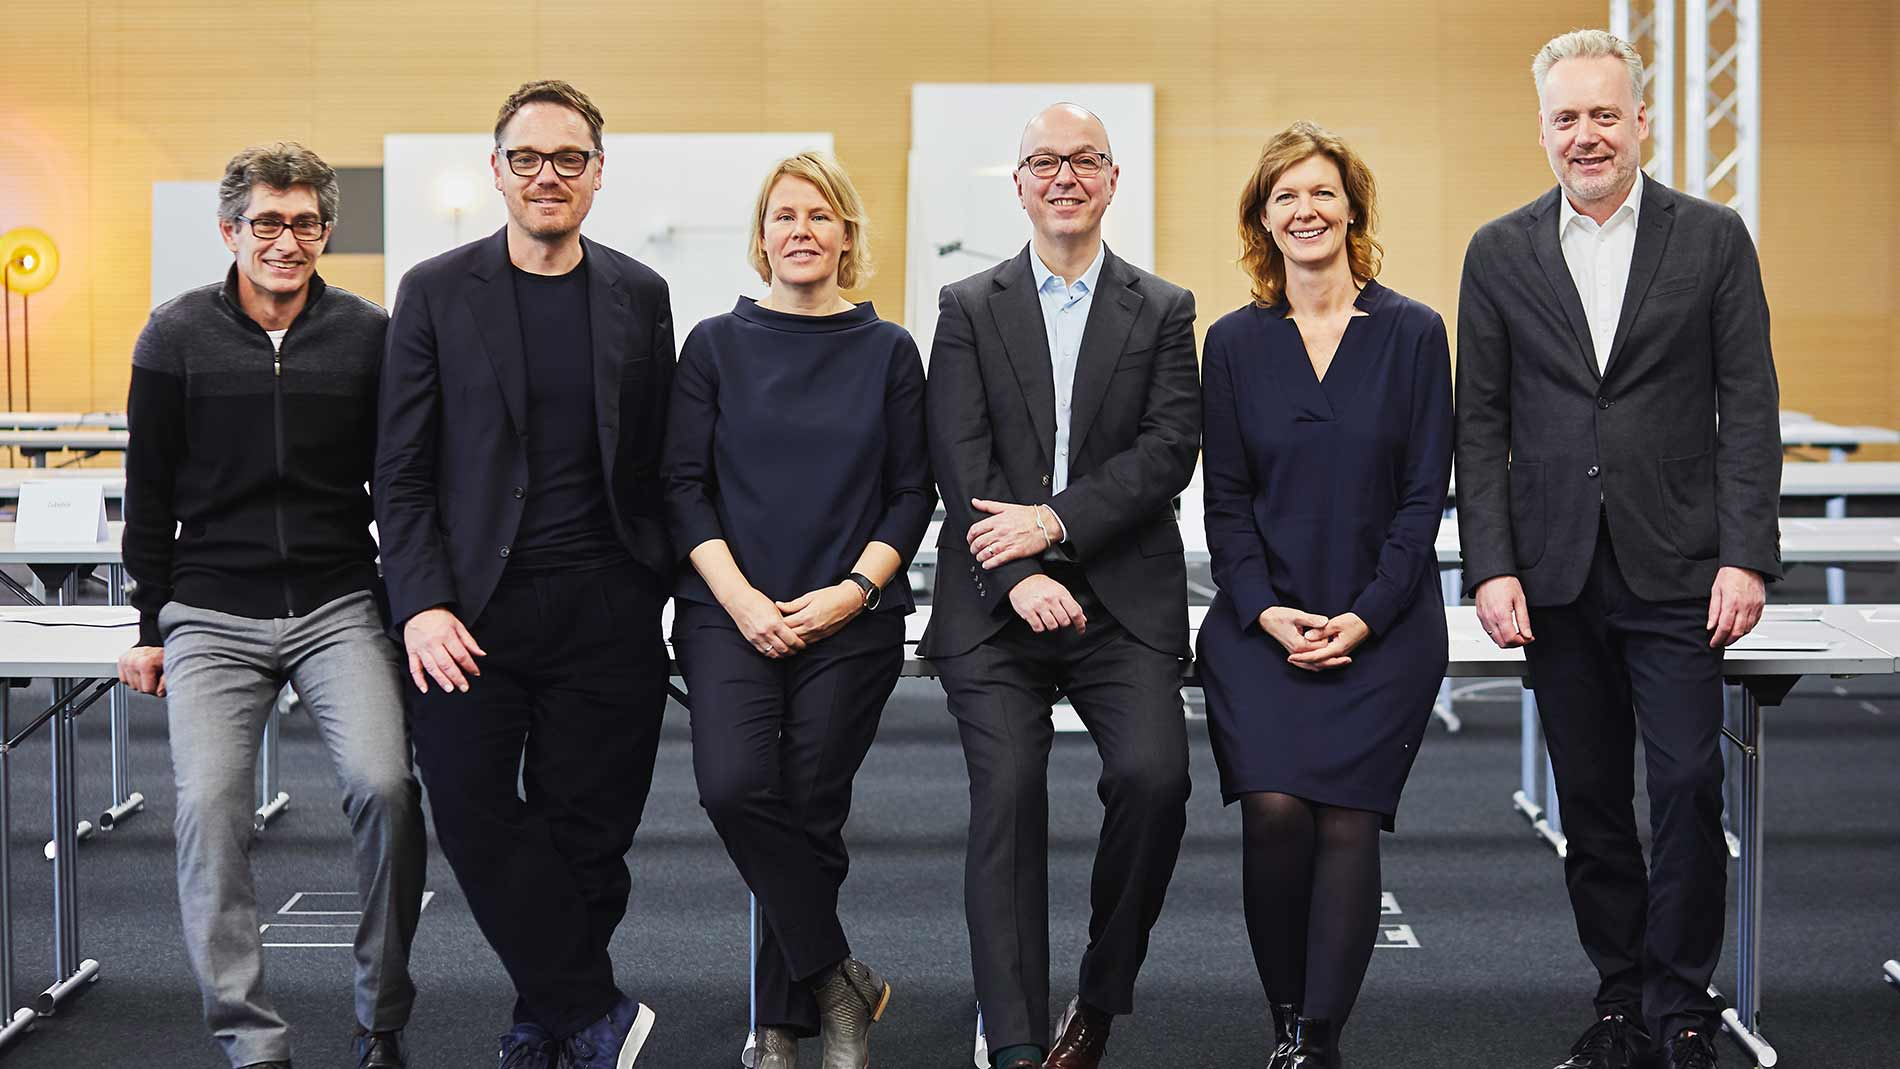 Design Plus jury meeting: Stefan Hillenmayer, Oliver Jahn, Julia Knaak, Lutz Dietzold, Sandra Rohlf, Sebastian Brink (left to right) (Source: German Design Council, Christof Jakob)